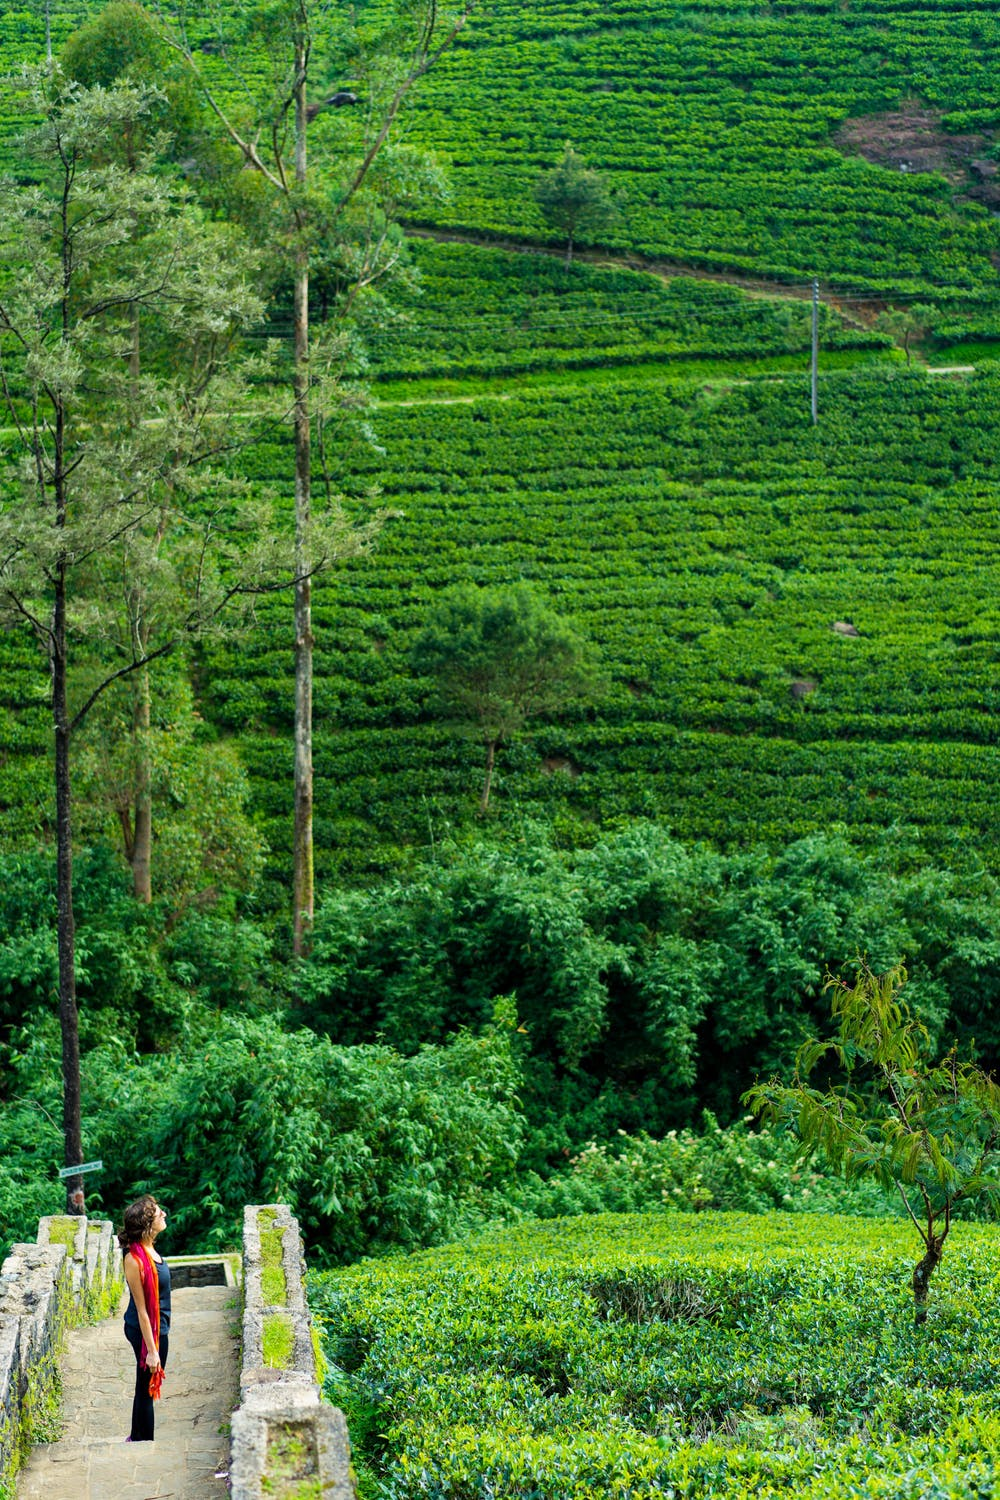 Rolling green tea hills in Sri Lanka with women with a red dress